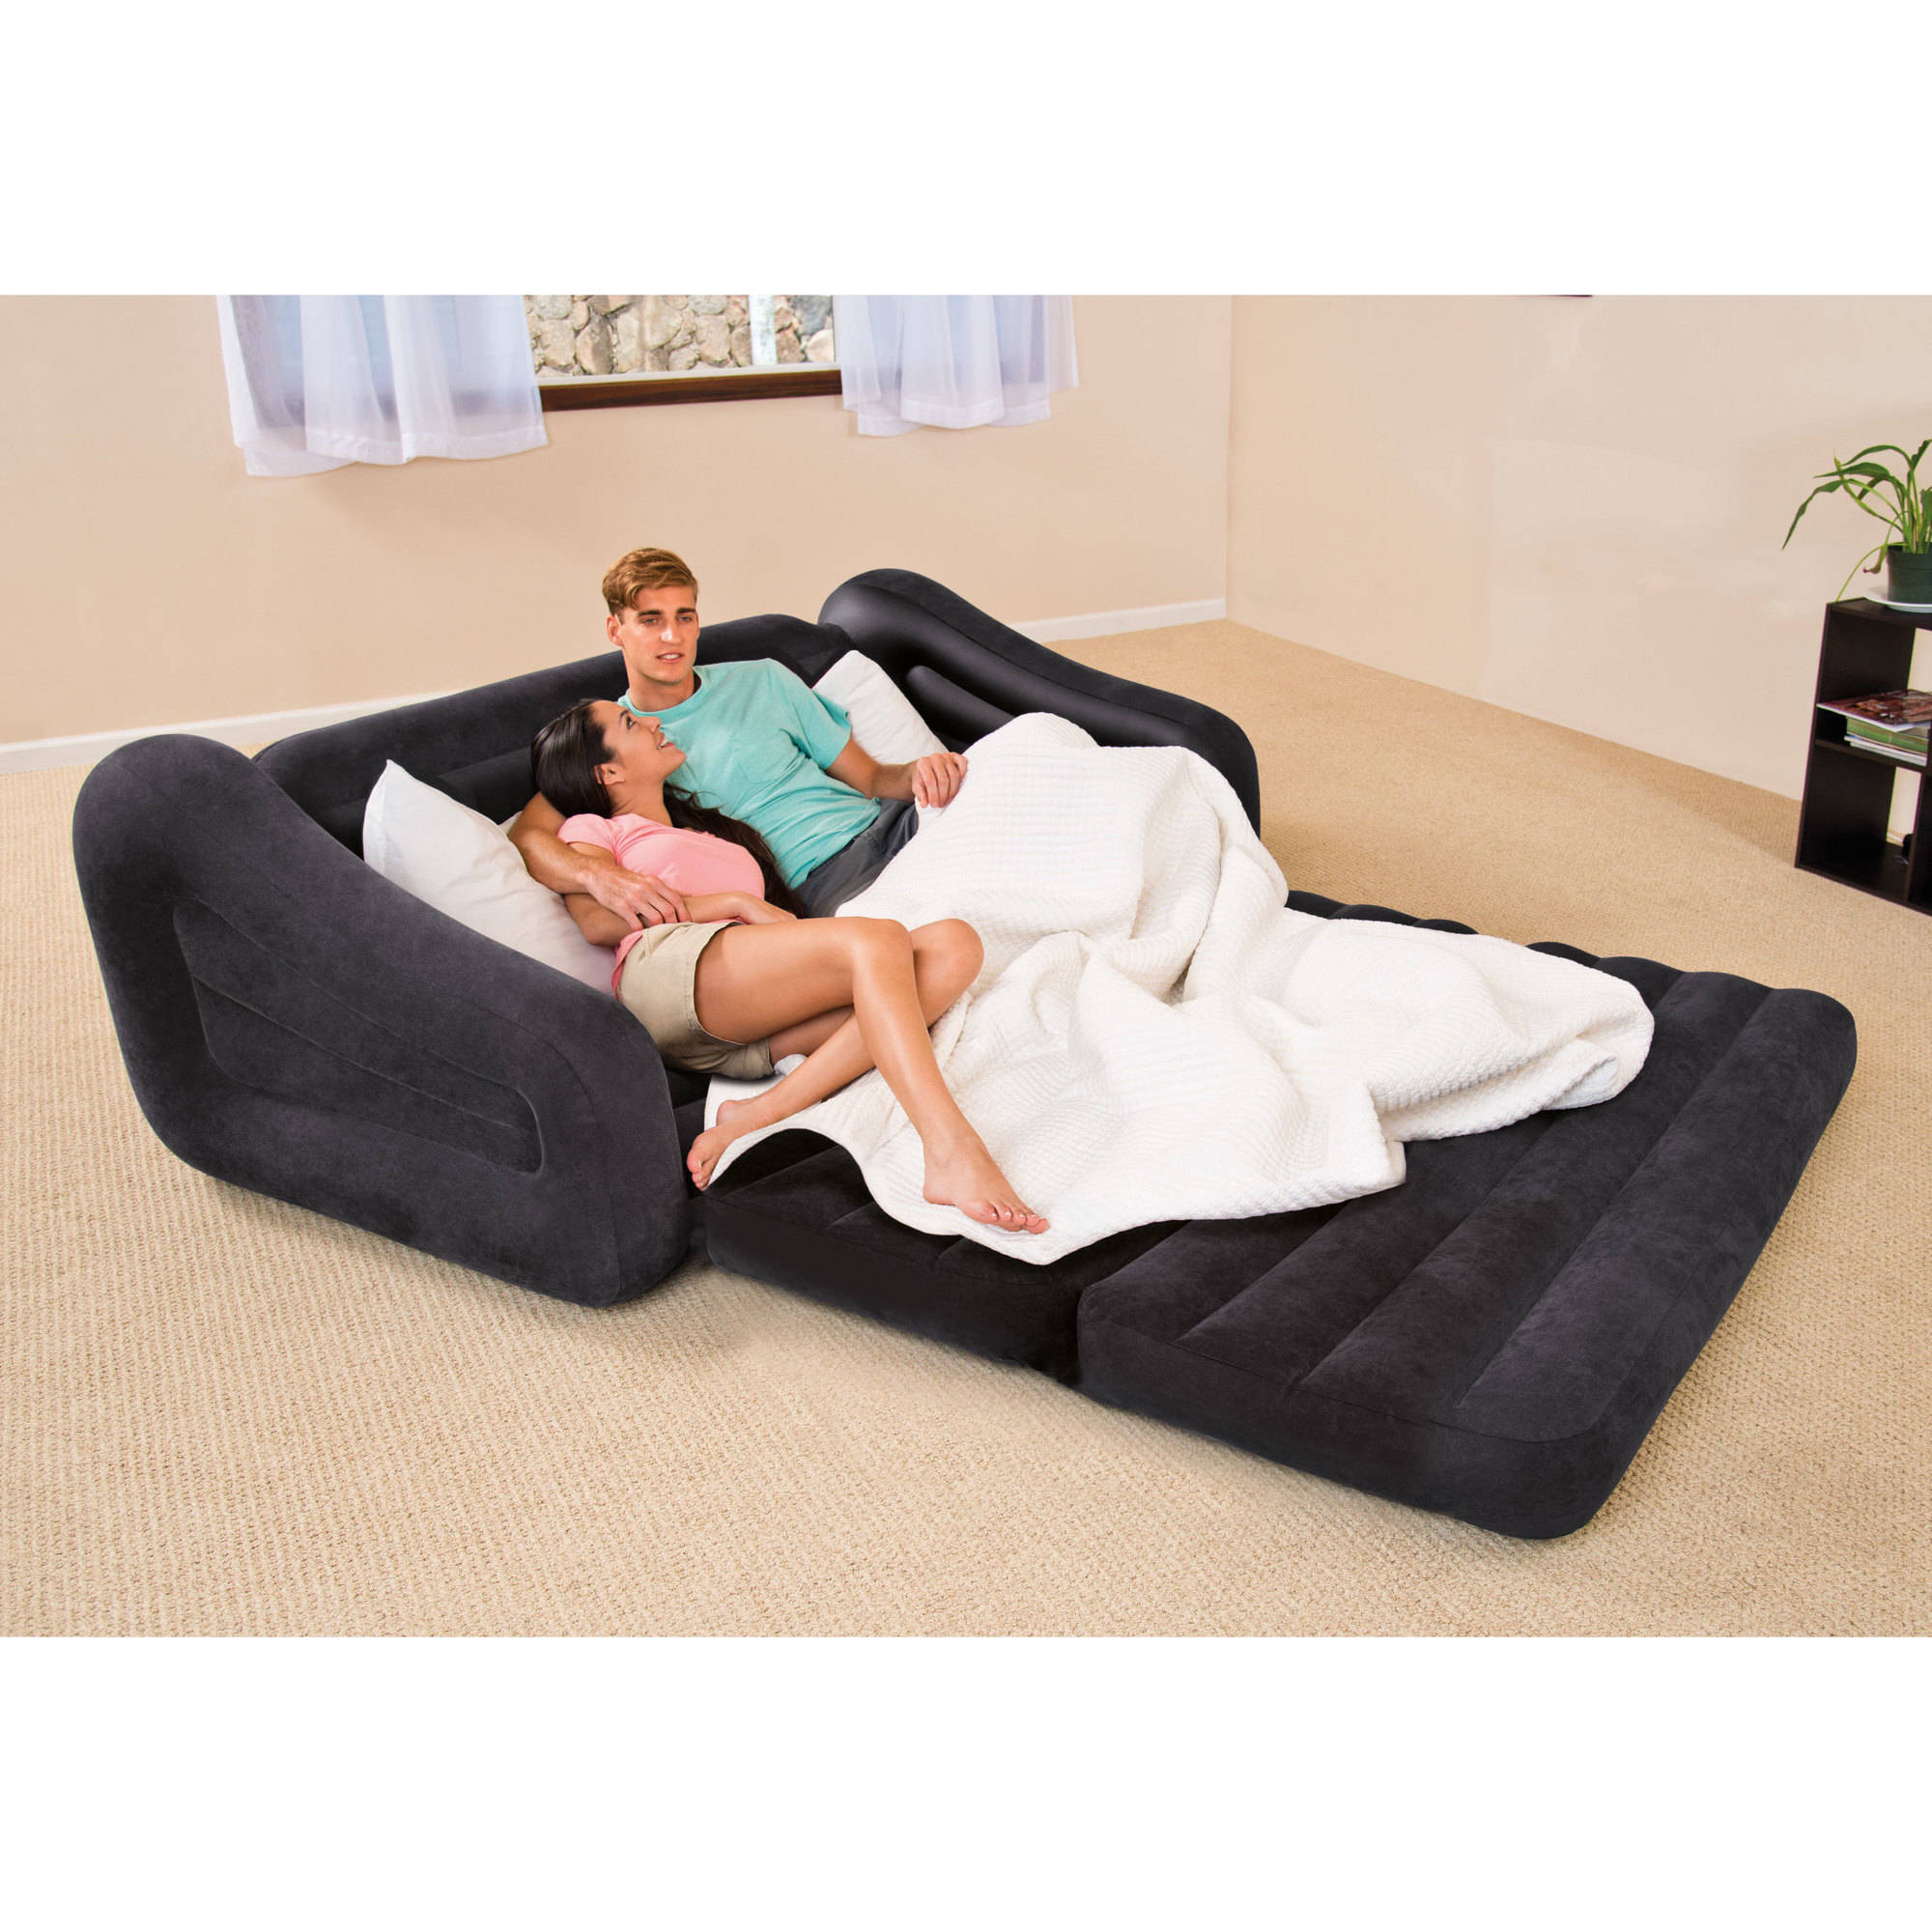 Intex Queen Inflatable Pull Out Sofa Bed